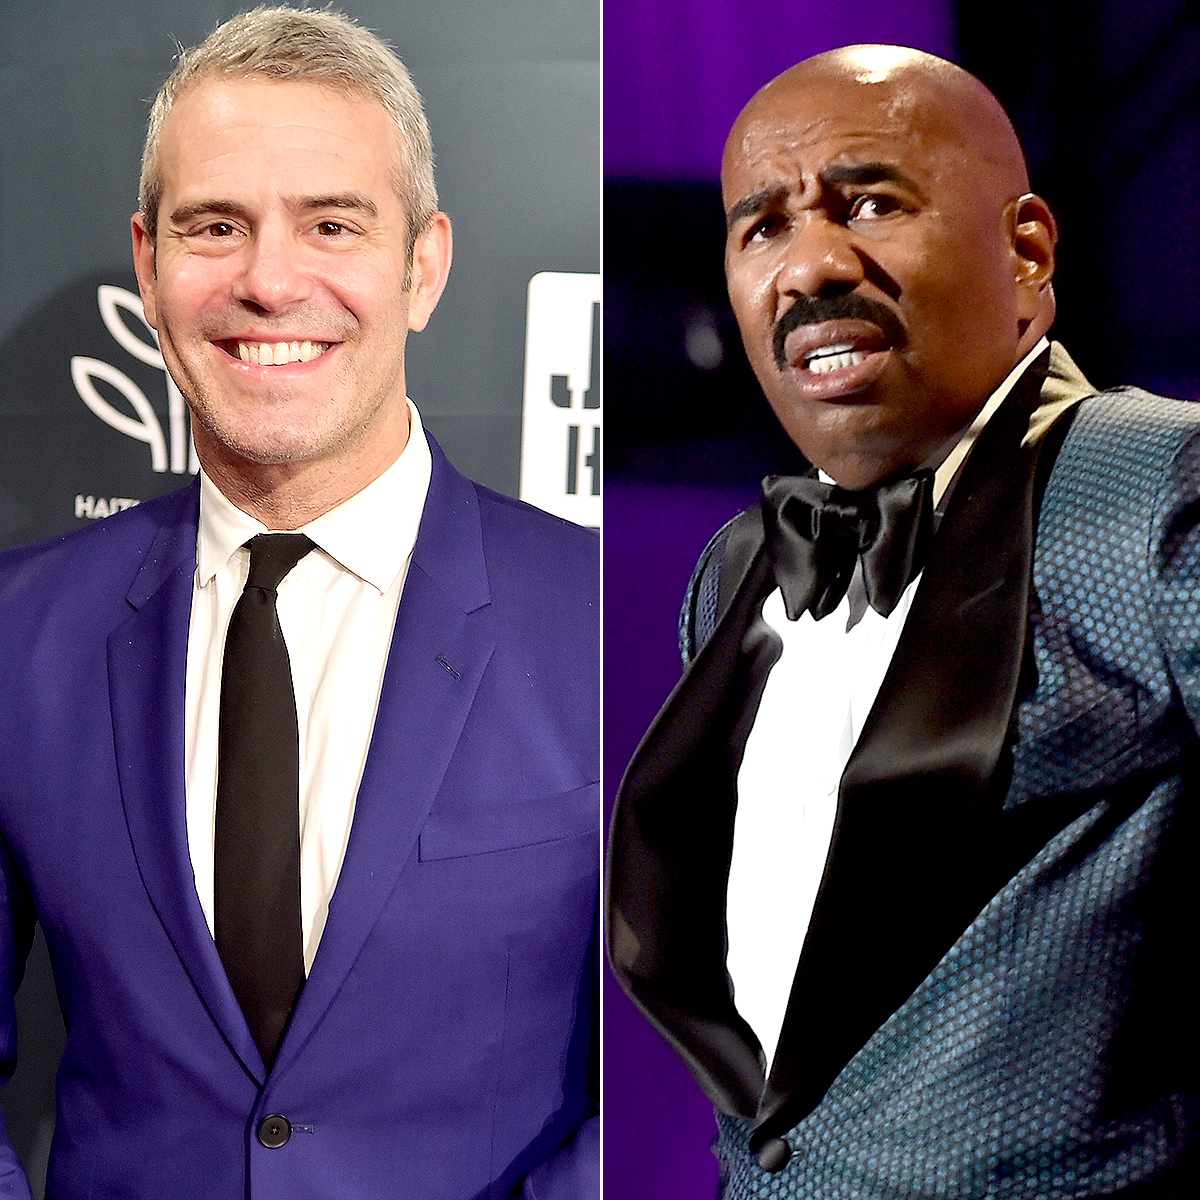 Andy Cohen and Steve Harvey